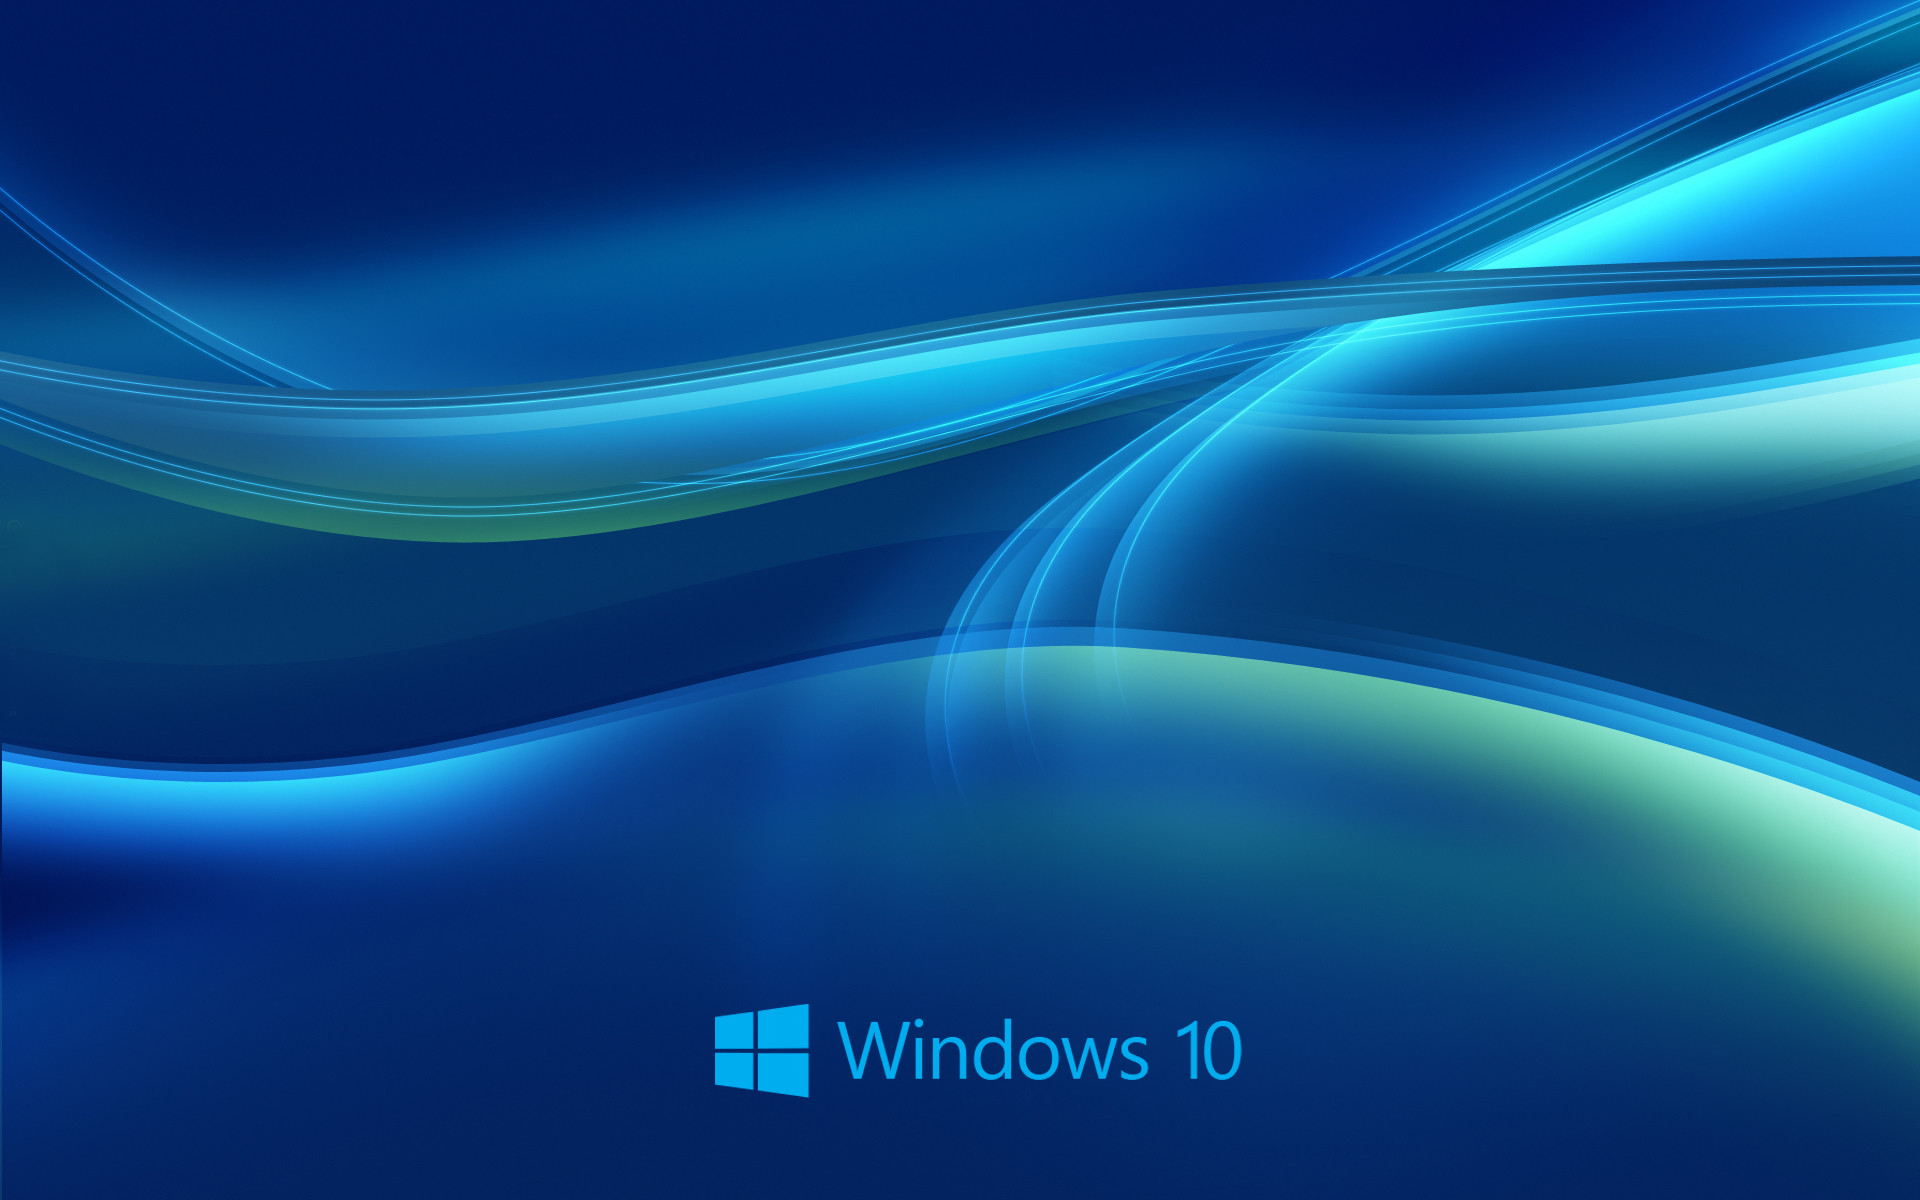 3d Live Wallpaper Android Windows 10 Live Wallpapers Hd 55 Images